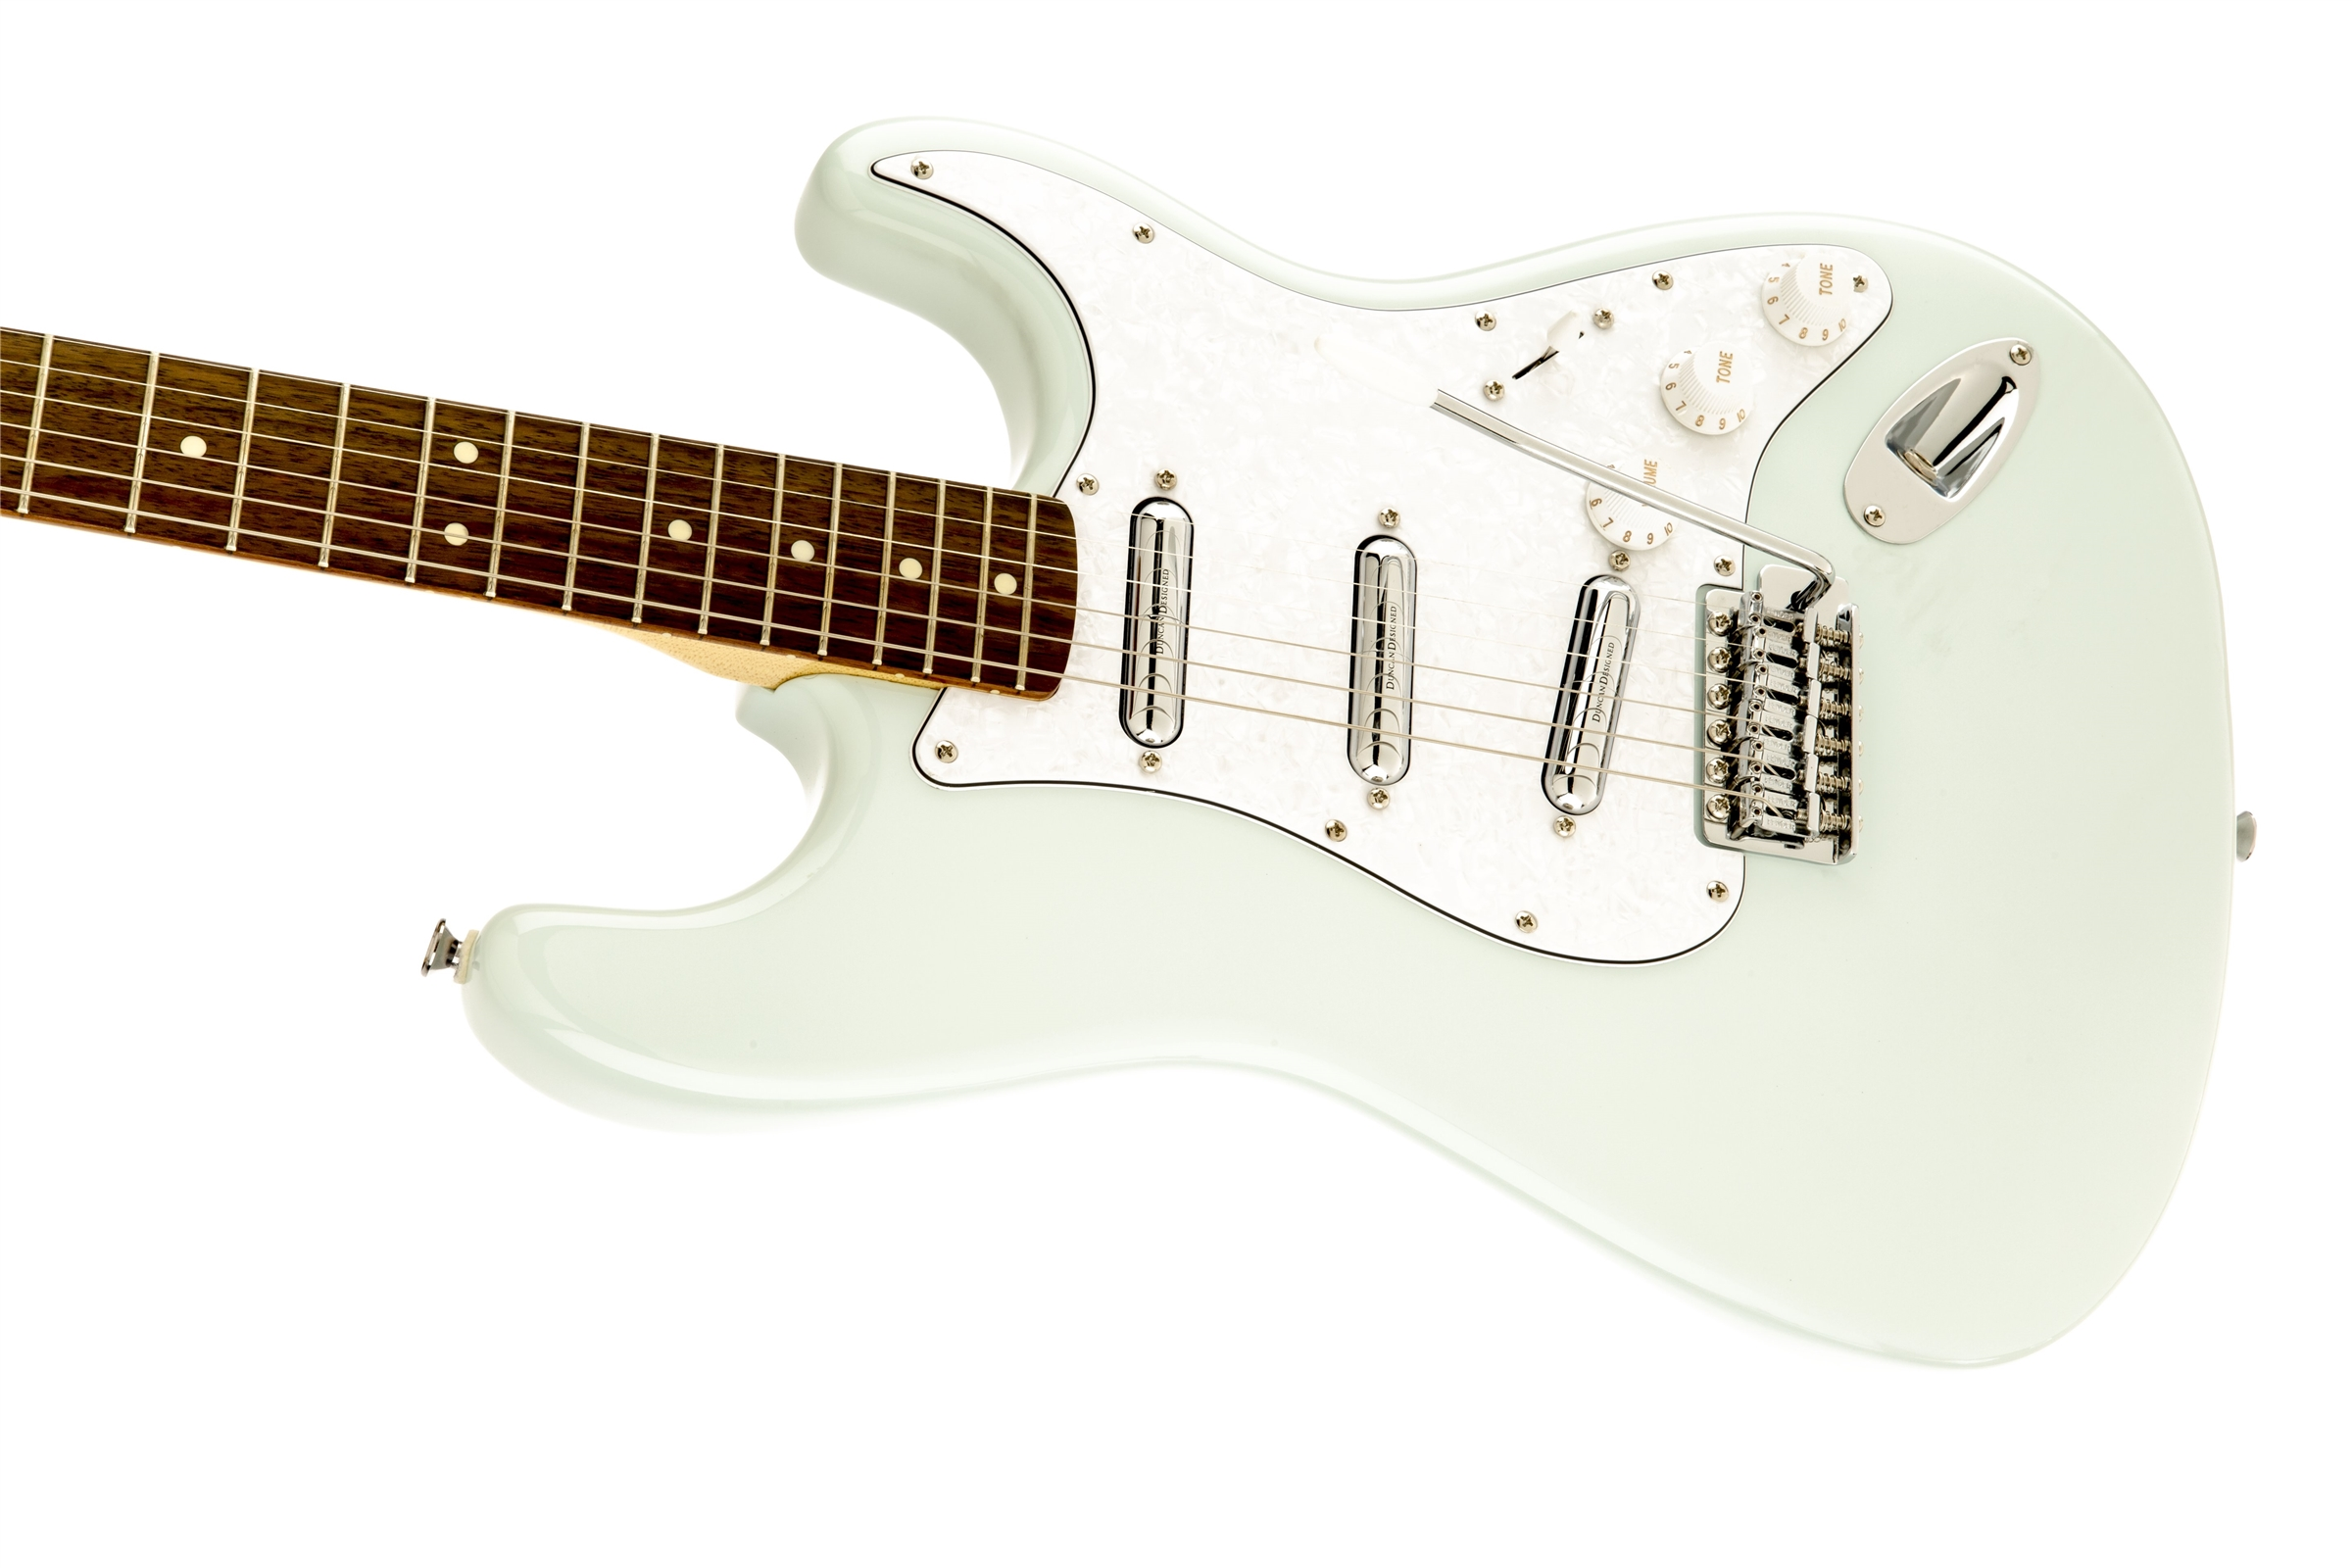 squier vintage modified surf stratocaster rosewood fingerboard sonic blue squier electric. Black Bedroom Furniture Sets. Home Design Ideas